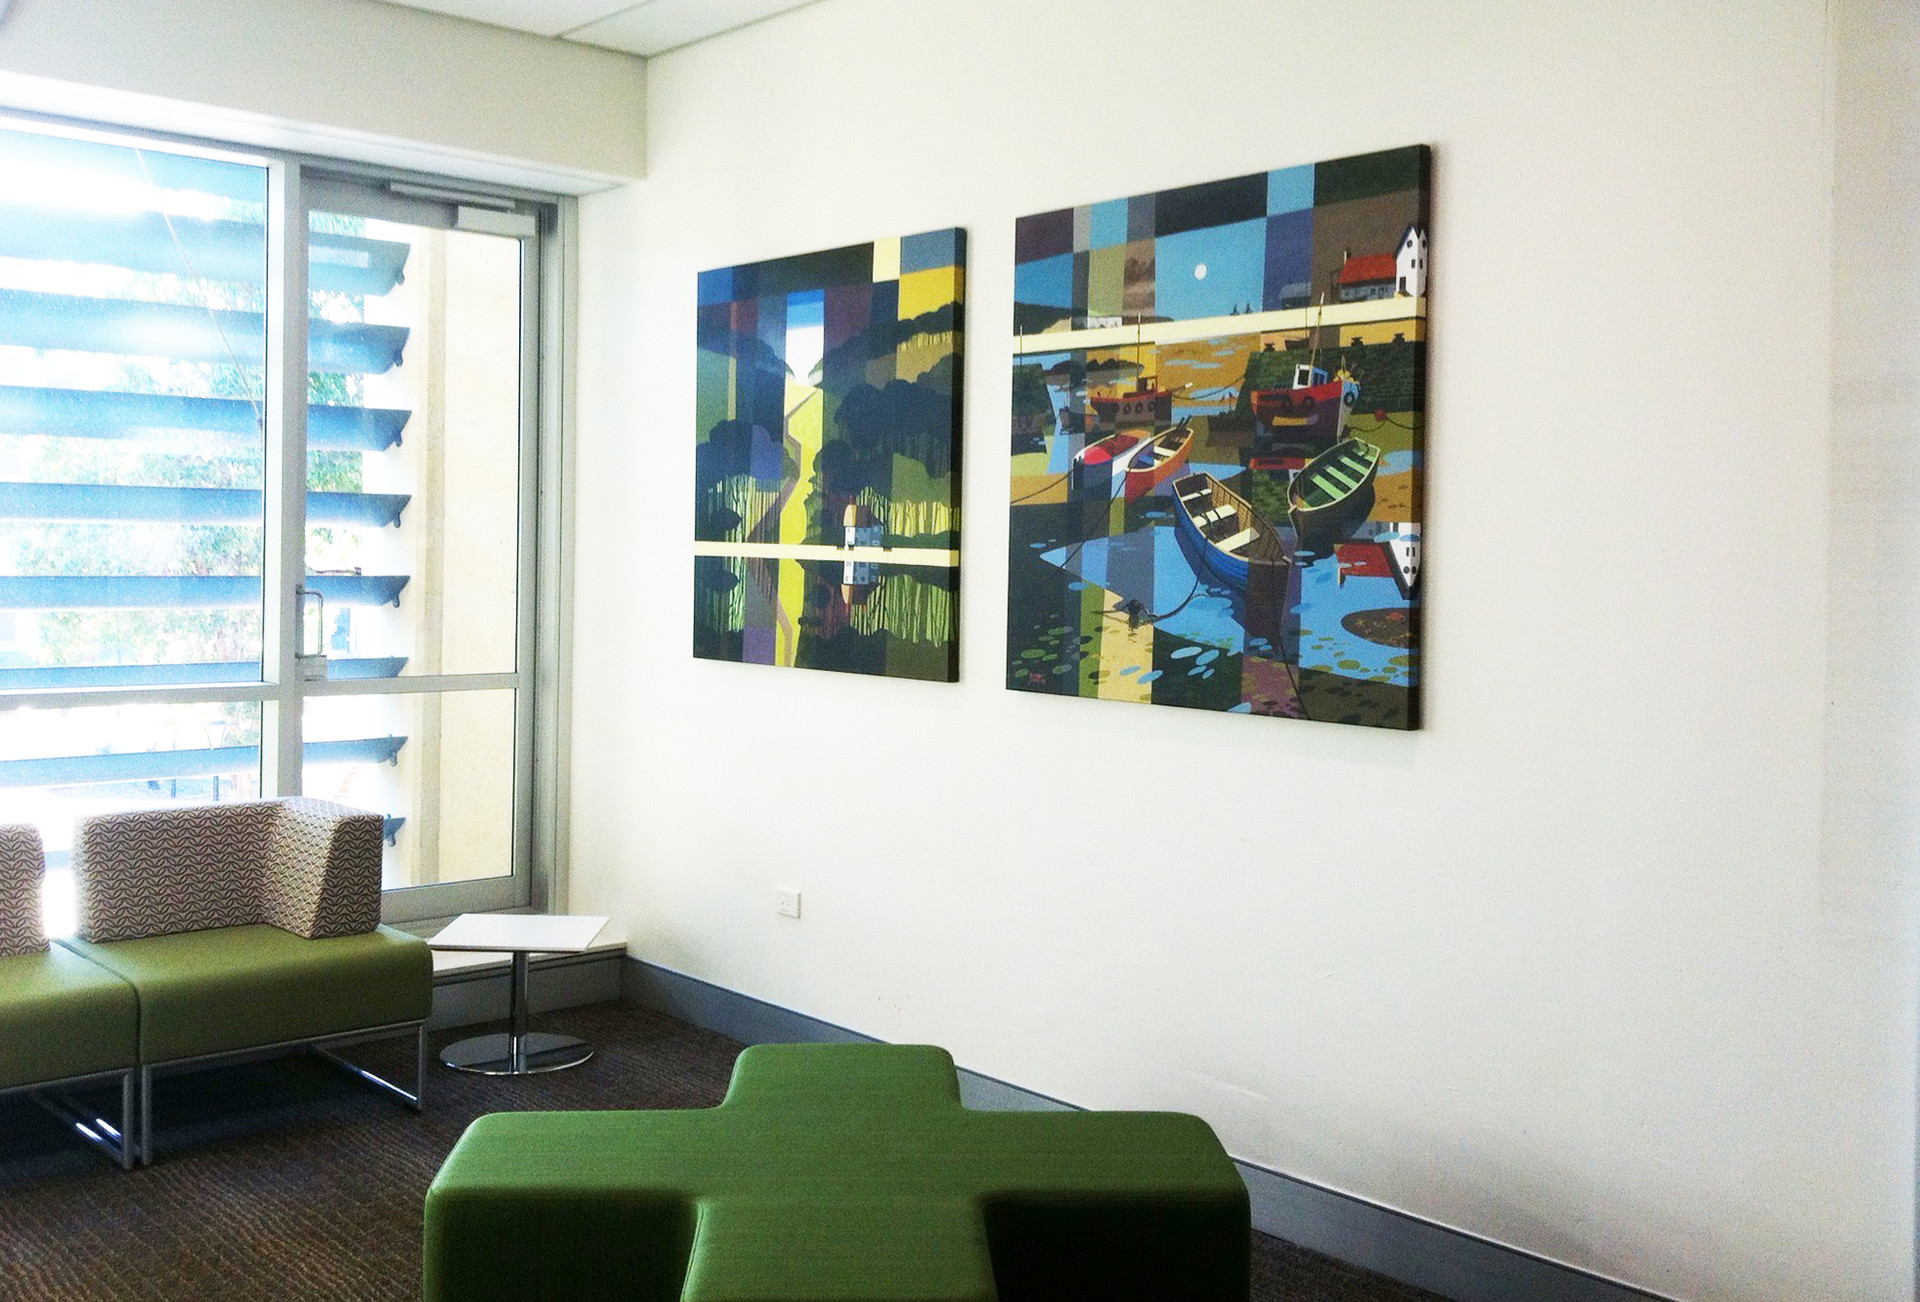 Edith Cowan University - Joondalup Campus fit out